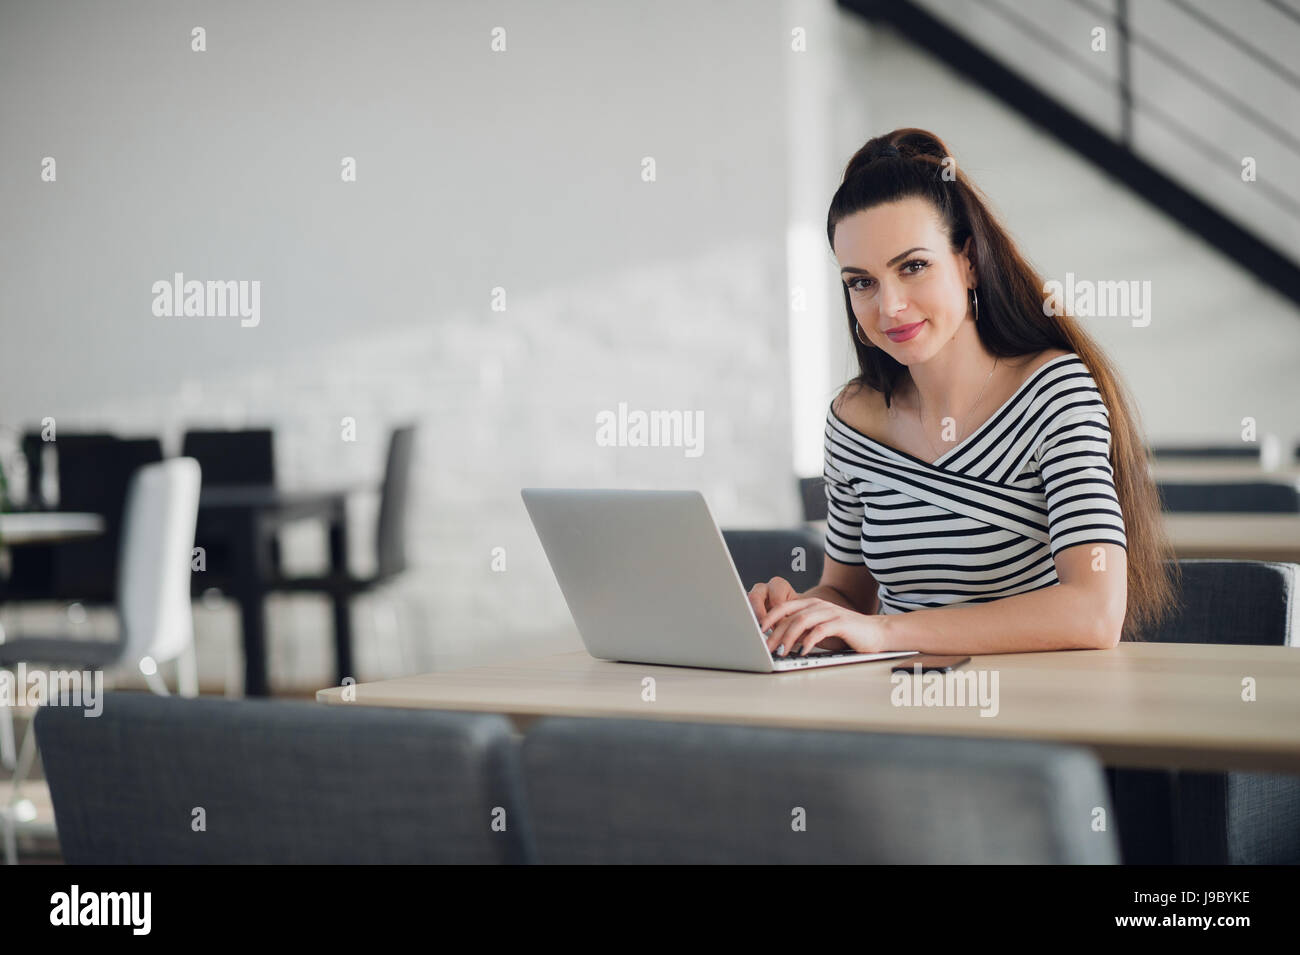 Charming female owner of business calling to manager supervising work of employee sitting in cafe interior, businesswoman - Stock Image